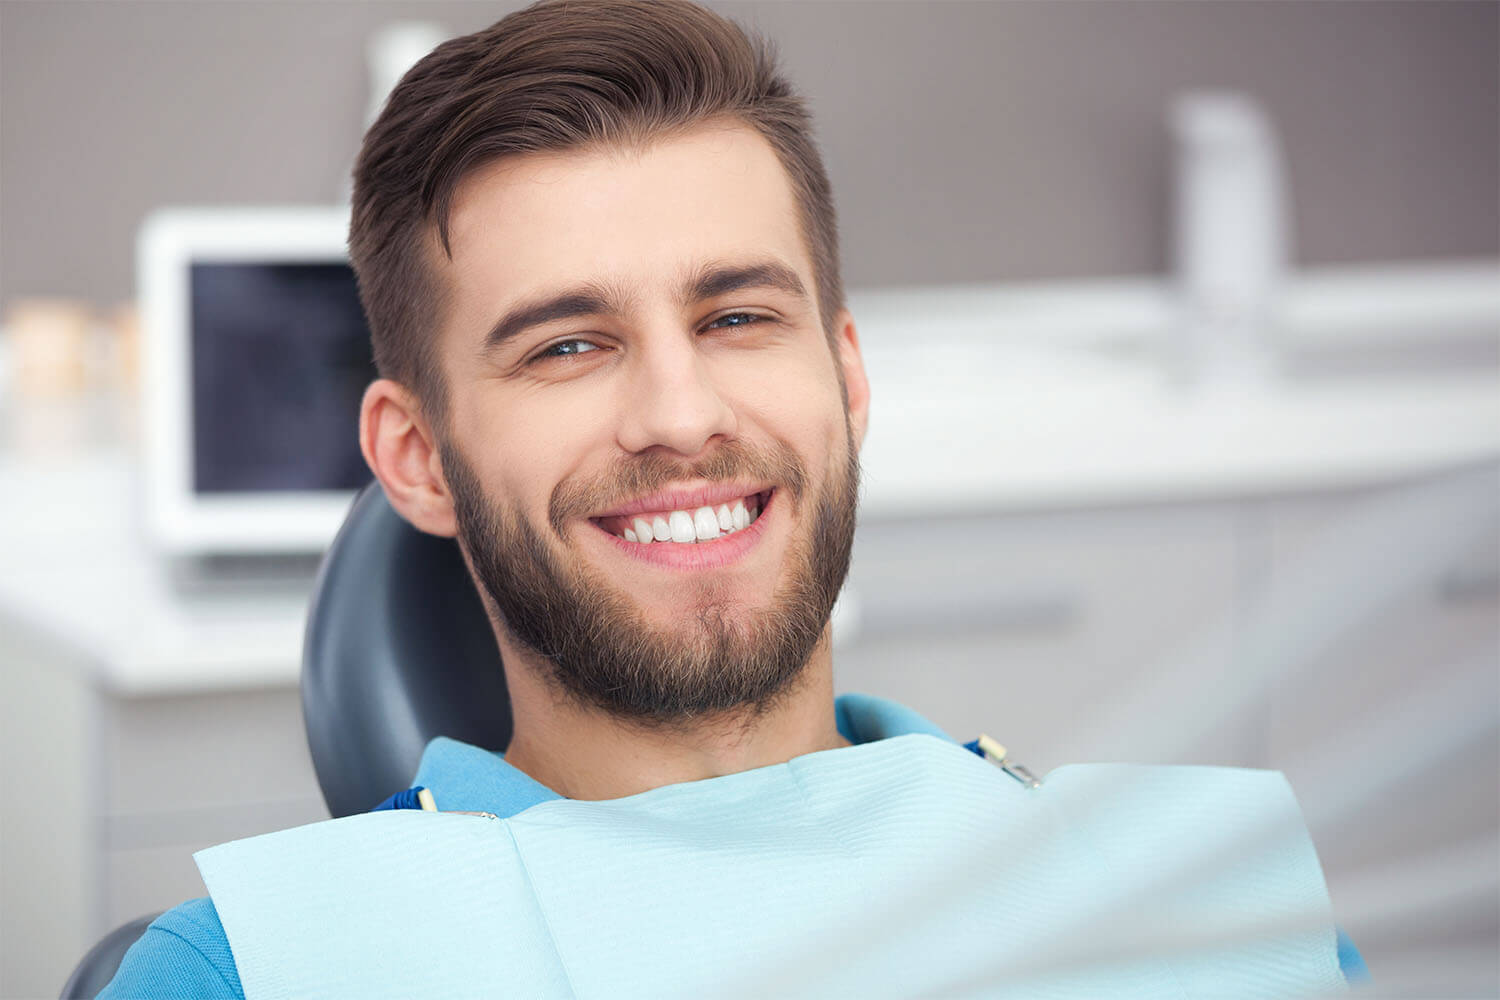 A good looking man smiling while sitting at our dental chair